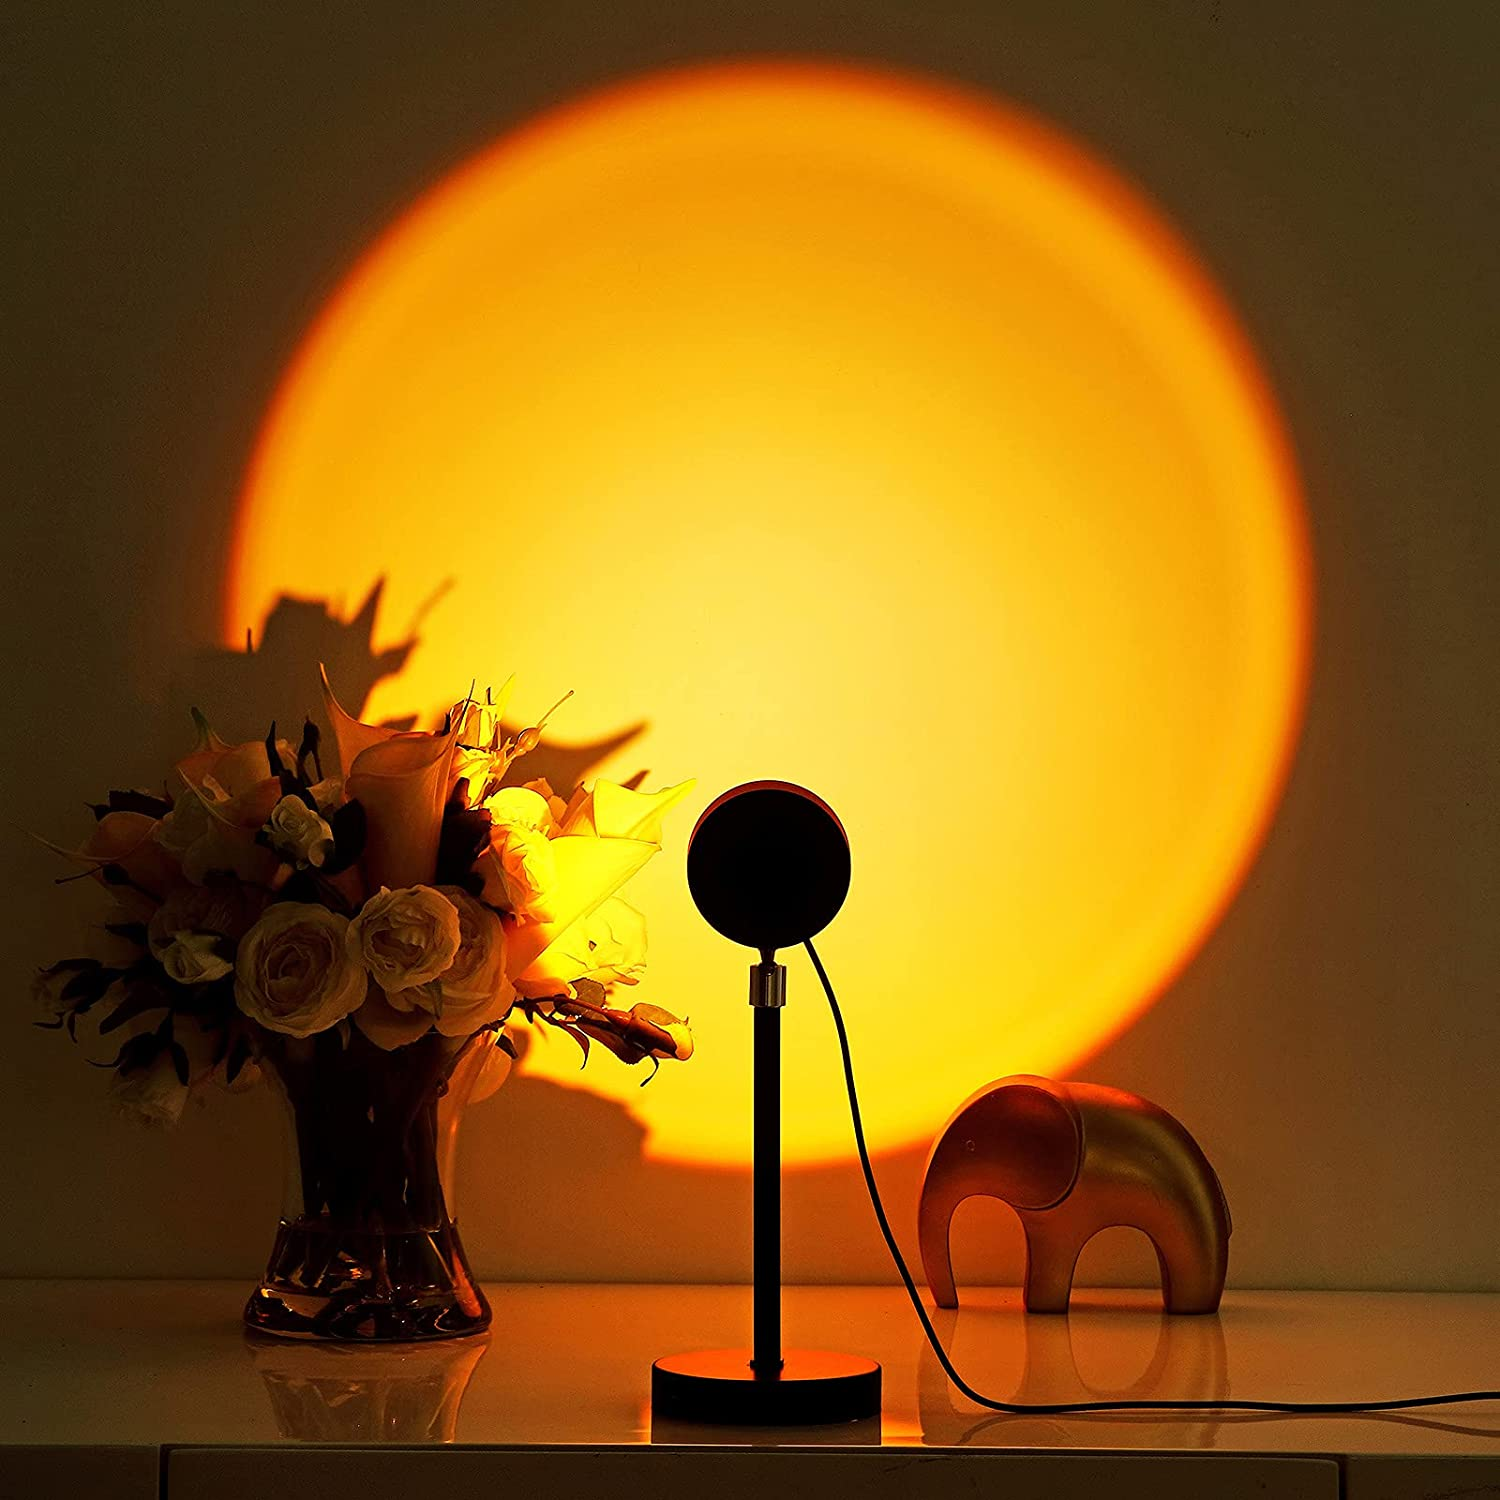 Elleety Sunset Lamp - Sunset Light Projector with 180-degree Rotation - USB Charge Sun Aura Lamp for Warm Romantic Mood - Photoshoot Sunset Lights for Indoors - Durable Aluminum Alloy Design